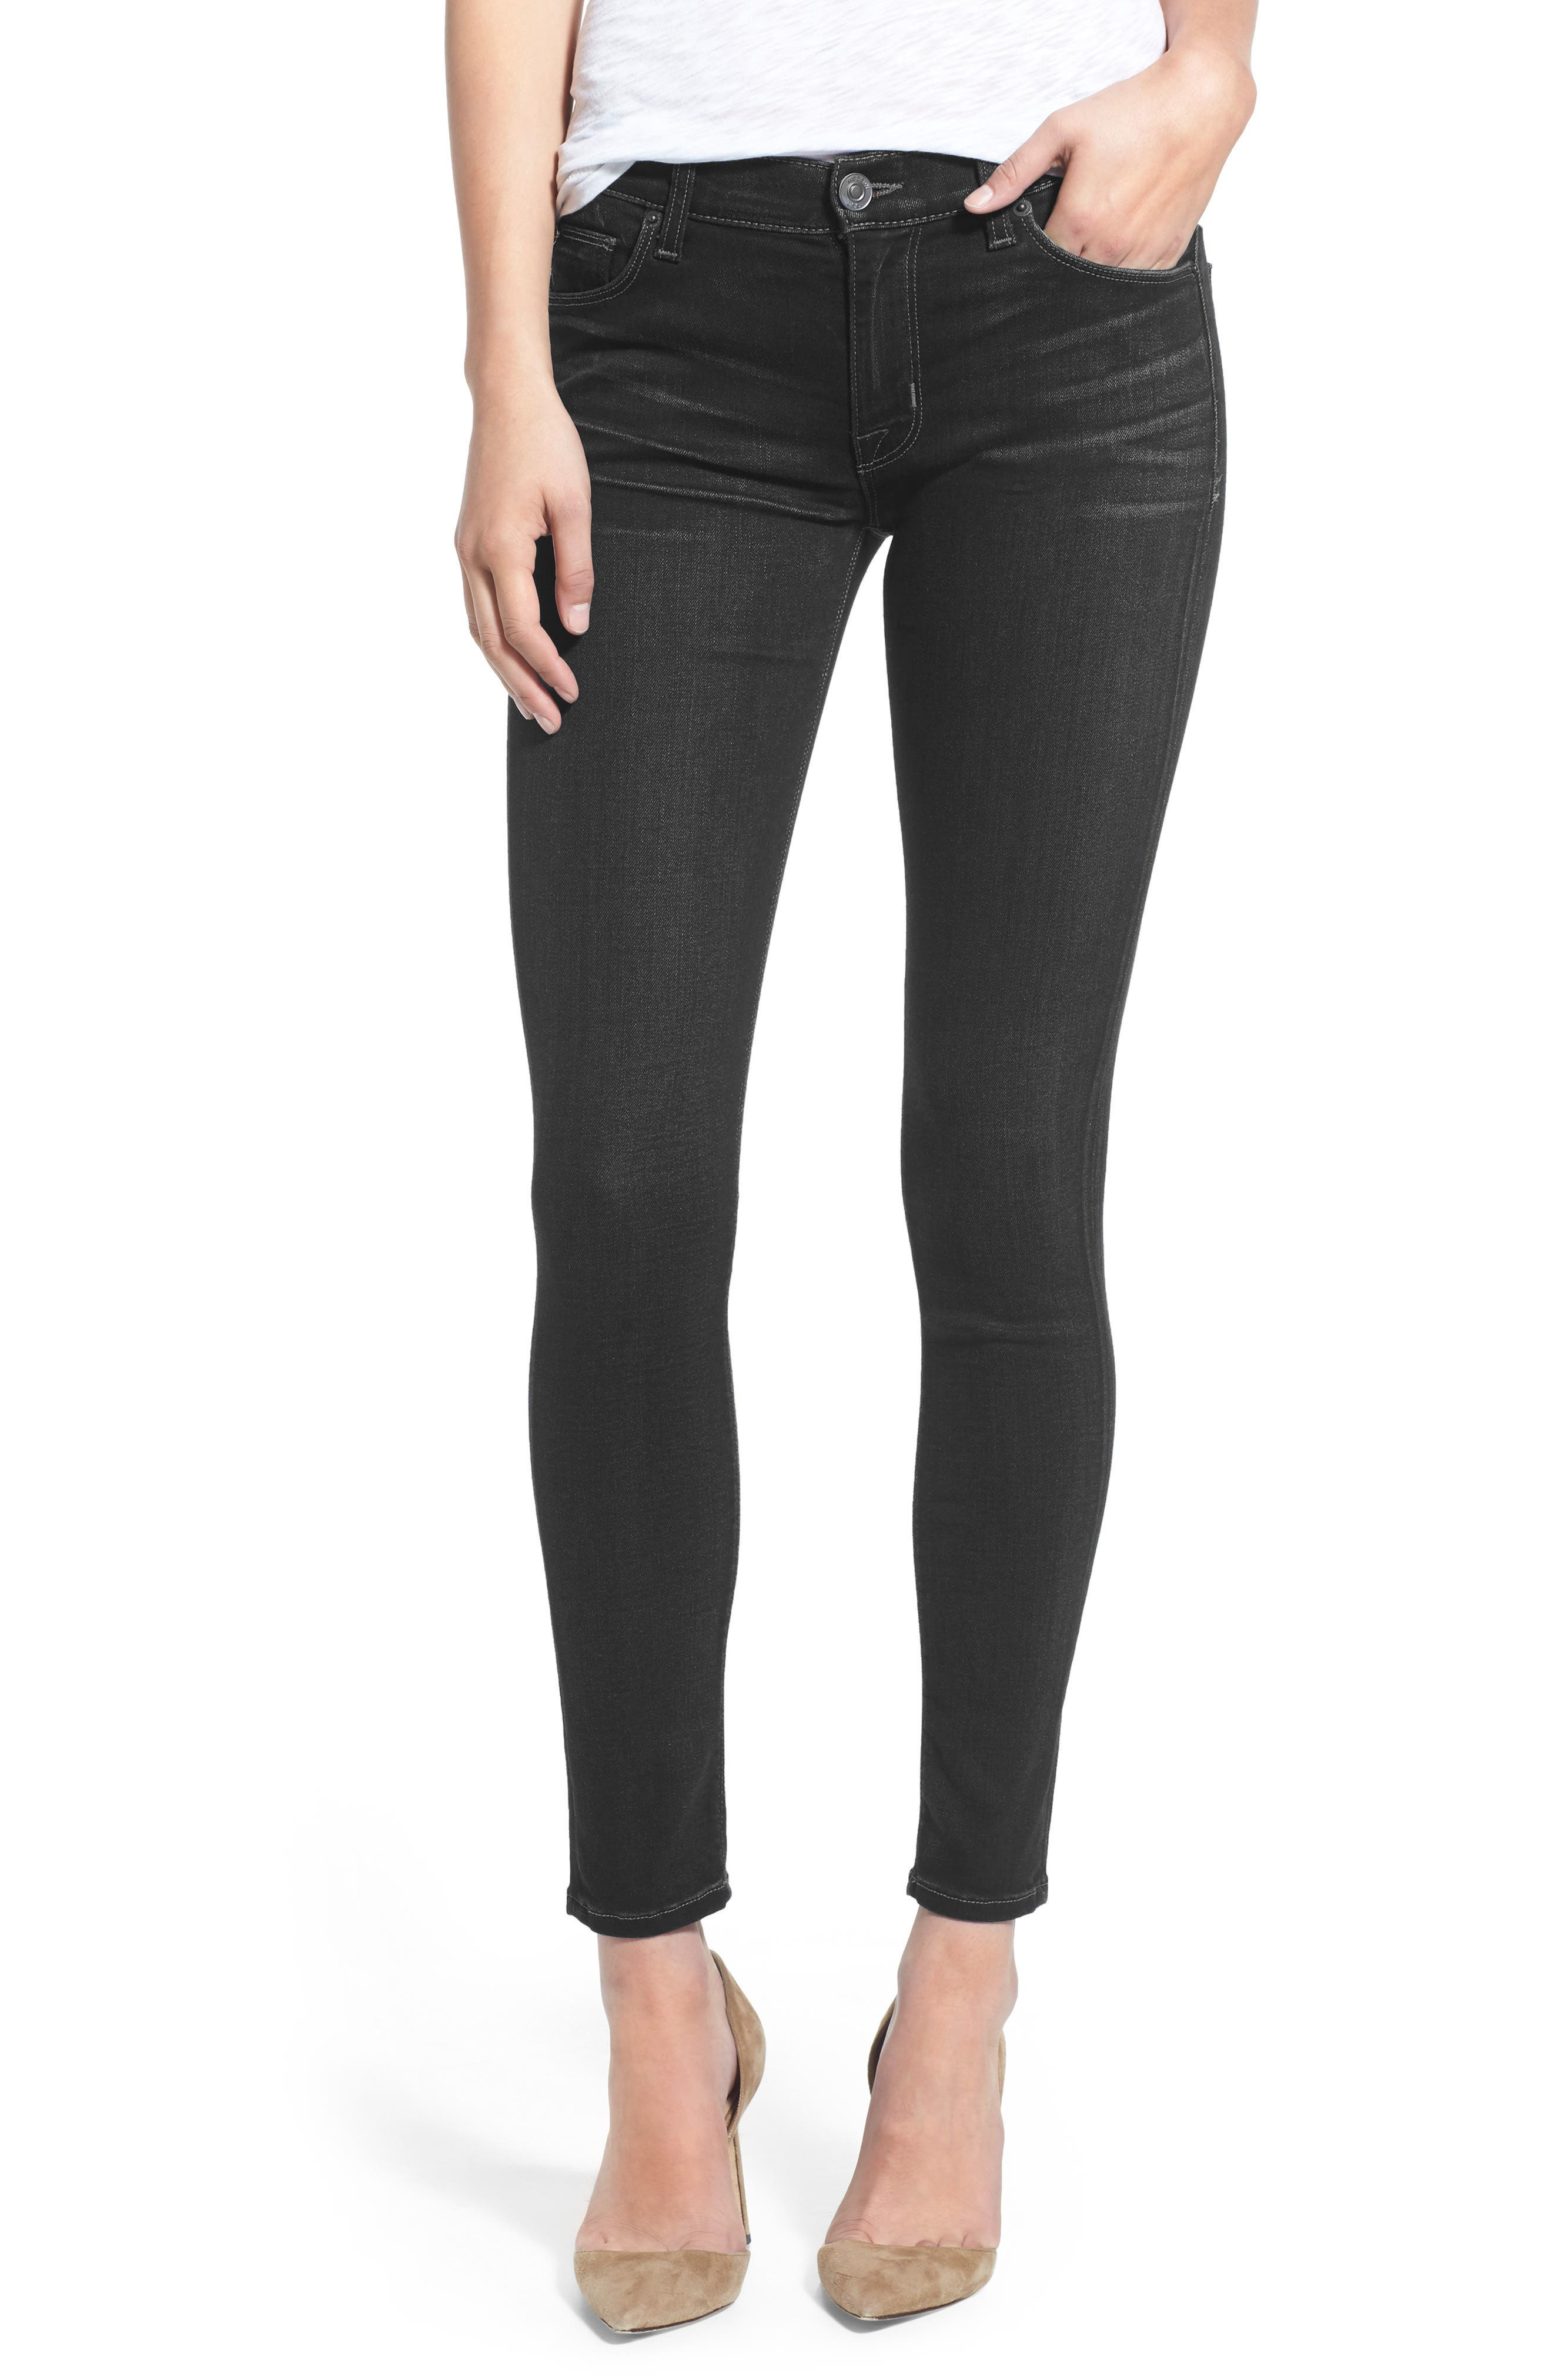 Nico Supermodel Super Skinny Jeans,                             Main thumbnail 1, color,                             001